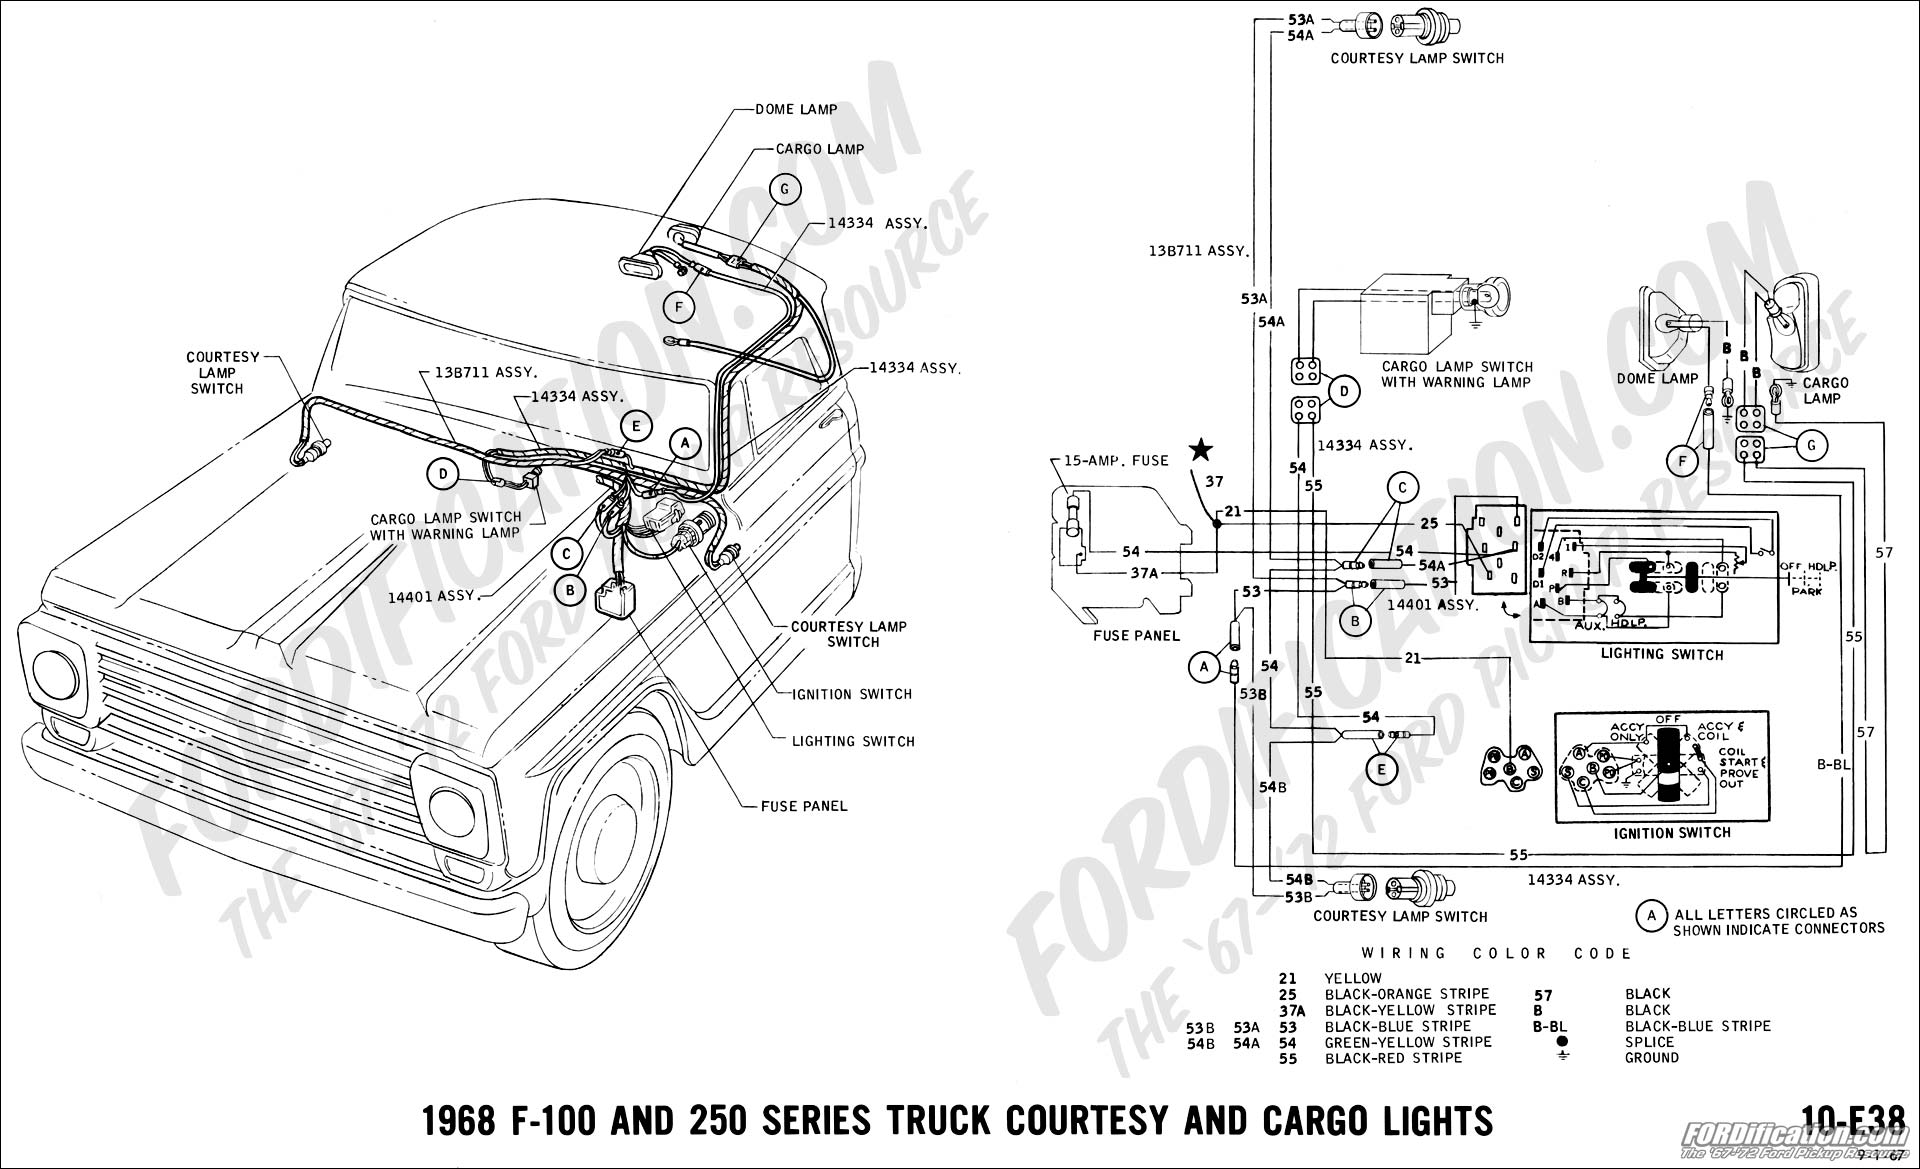 68 40 ford truck technical drawings and schematics section h wiring slide in camper wiring diagram at edmiracle.co